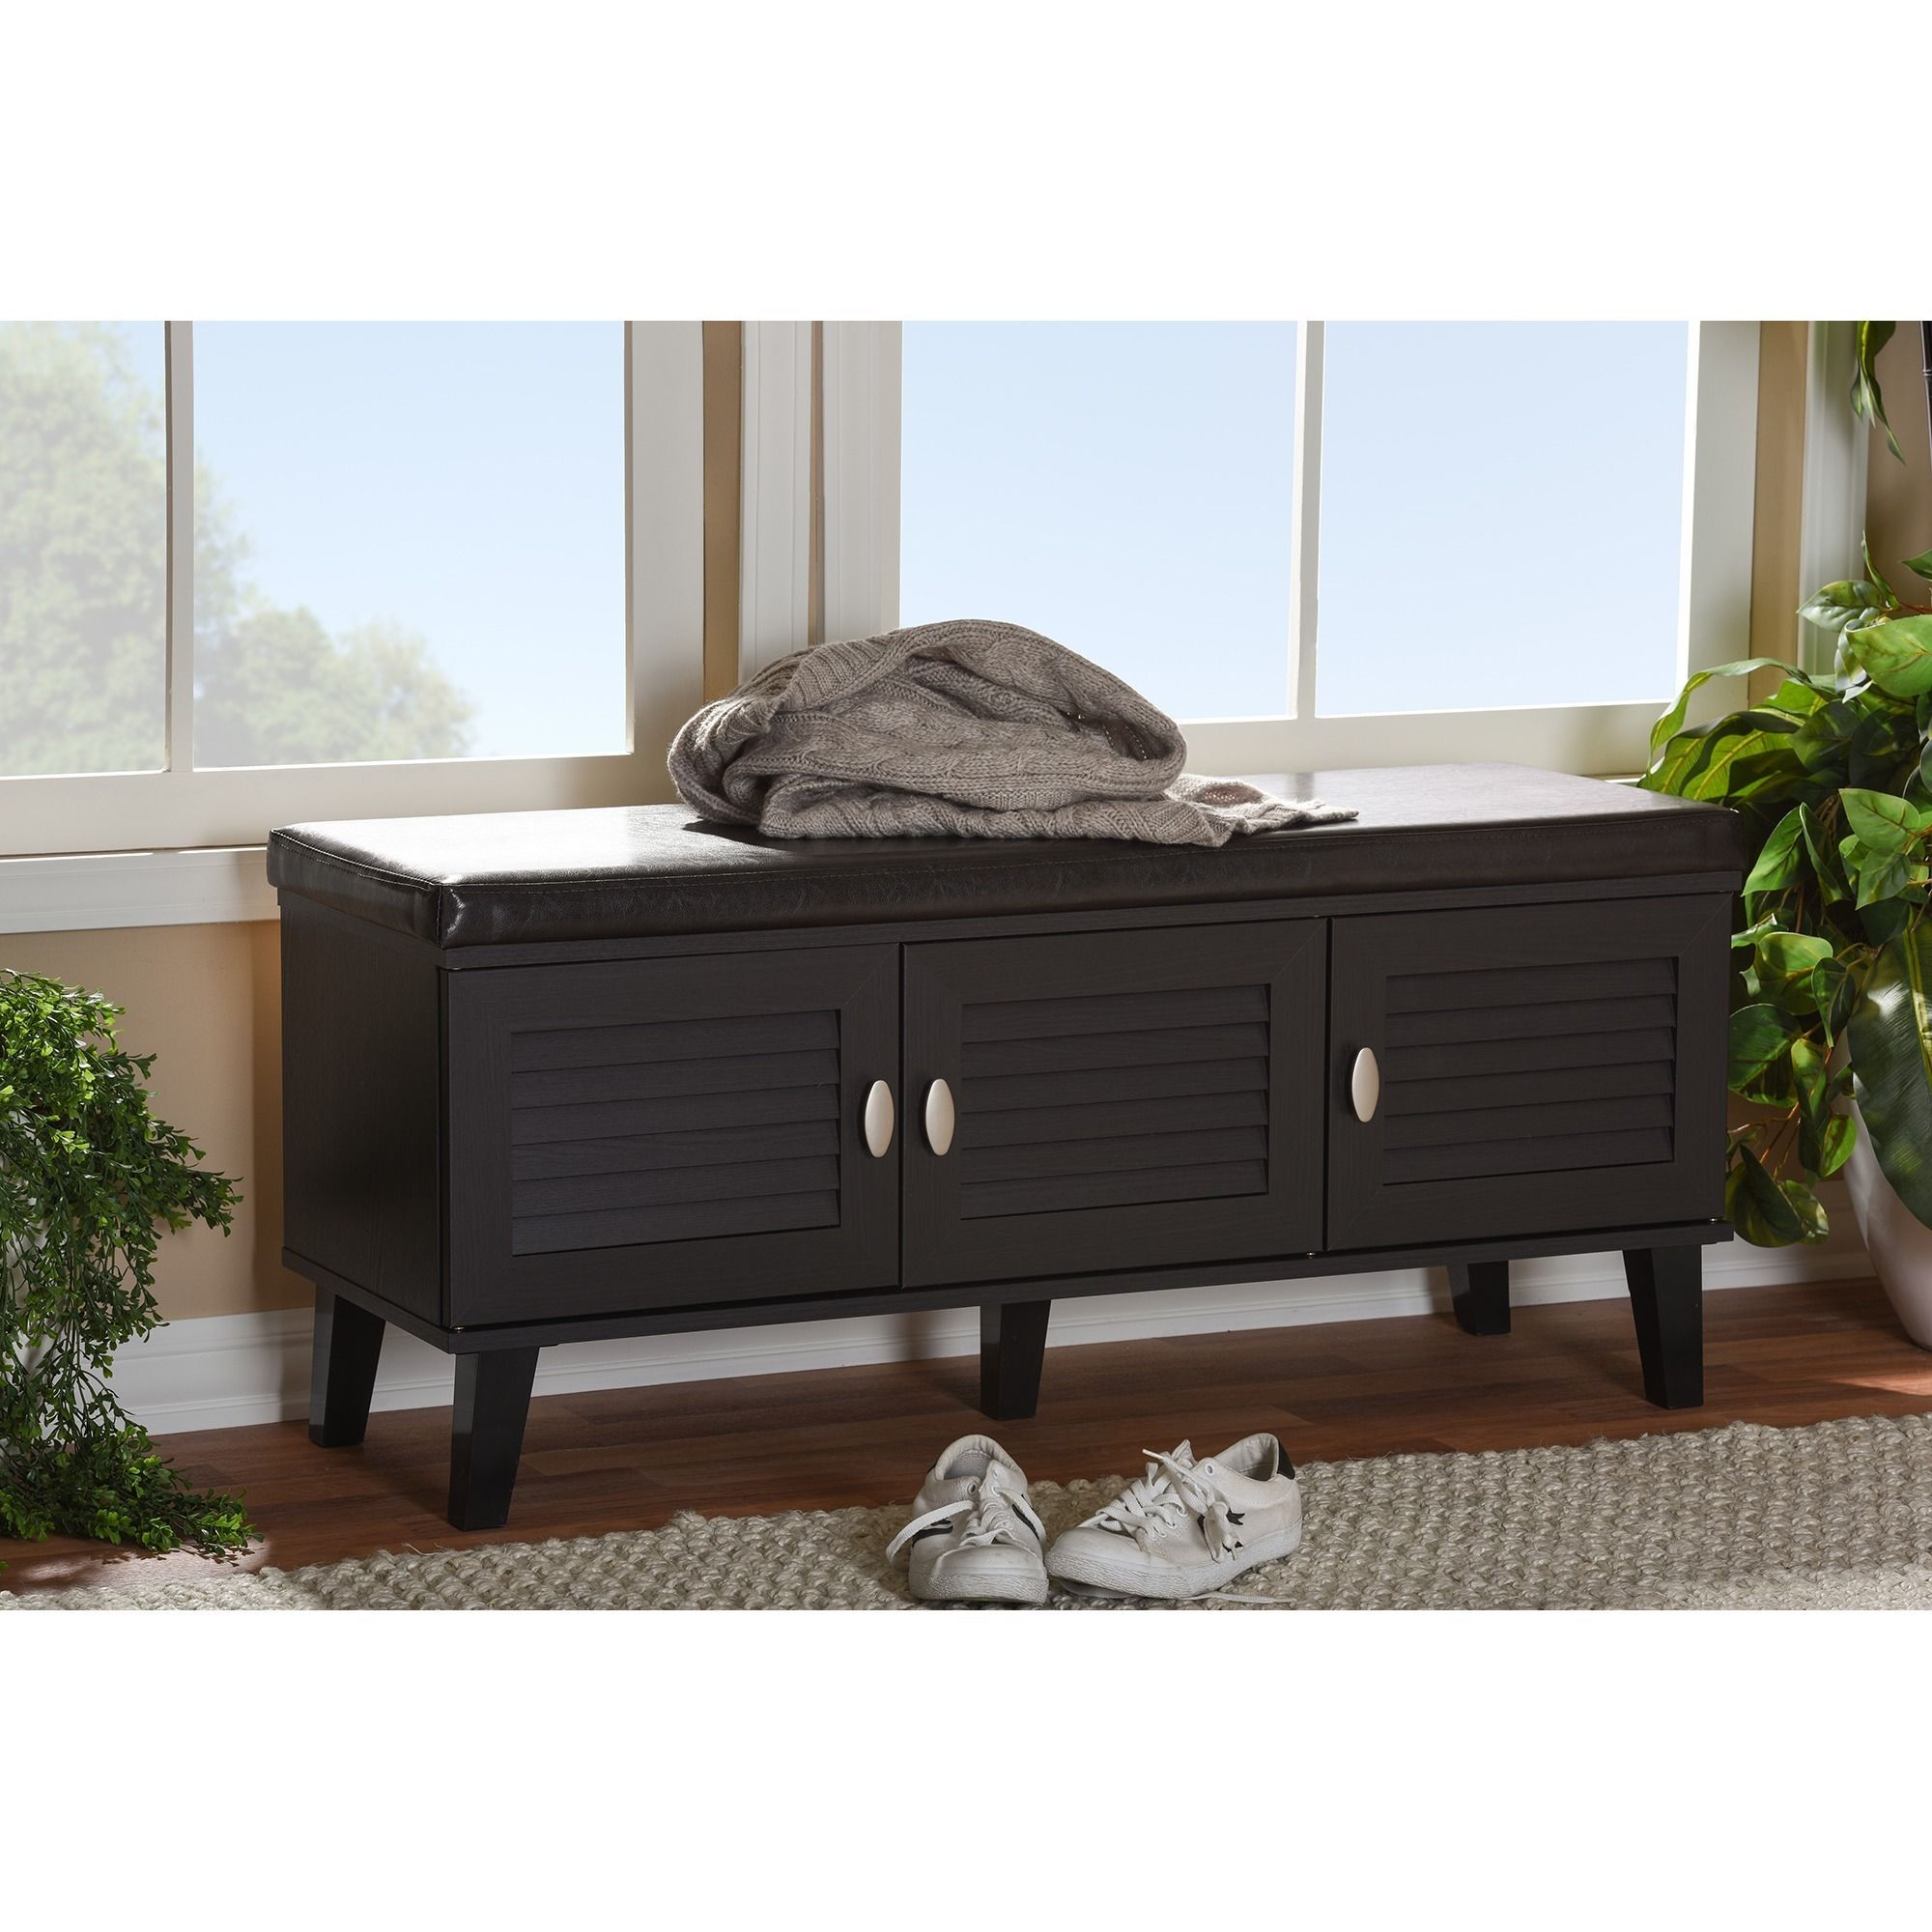 files furniture popular of entryway and cabinet maisonmiel inspiring concept pic storage luxury u